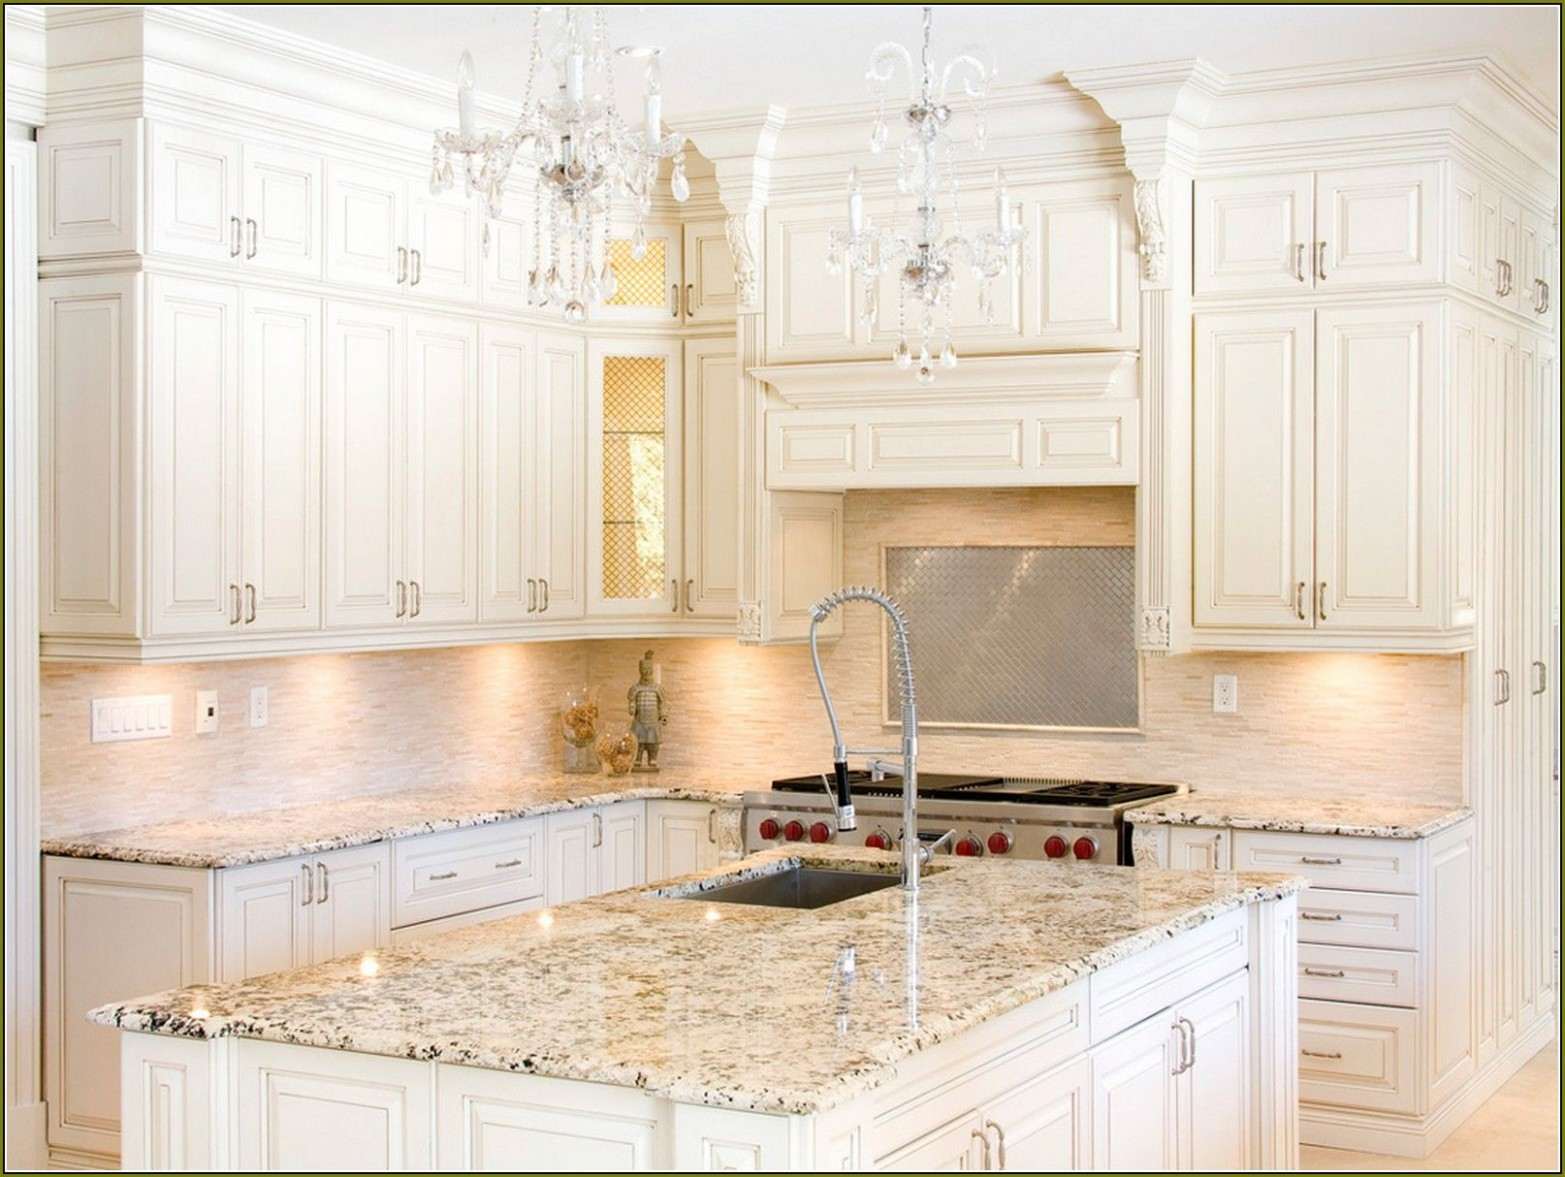 Pin on Kitchens - Antique White Kitchen Cabinets With Granite Countertops